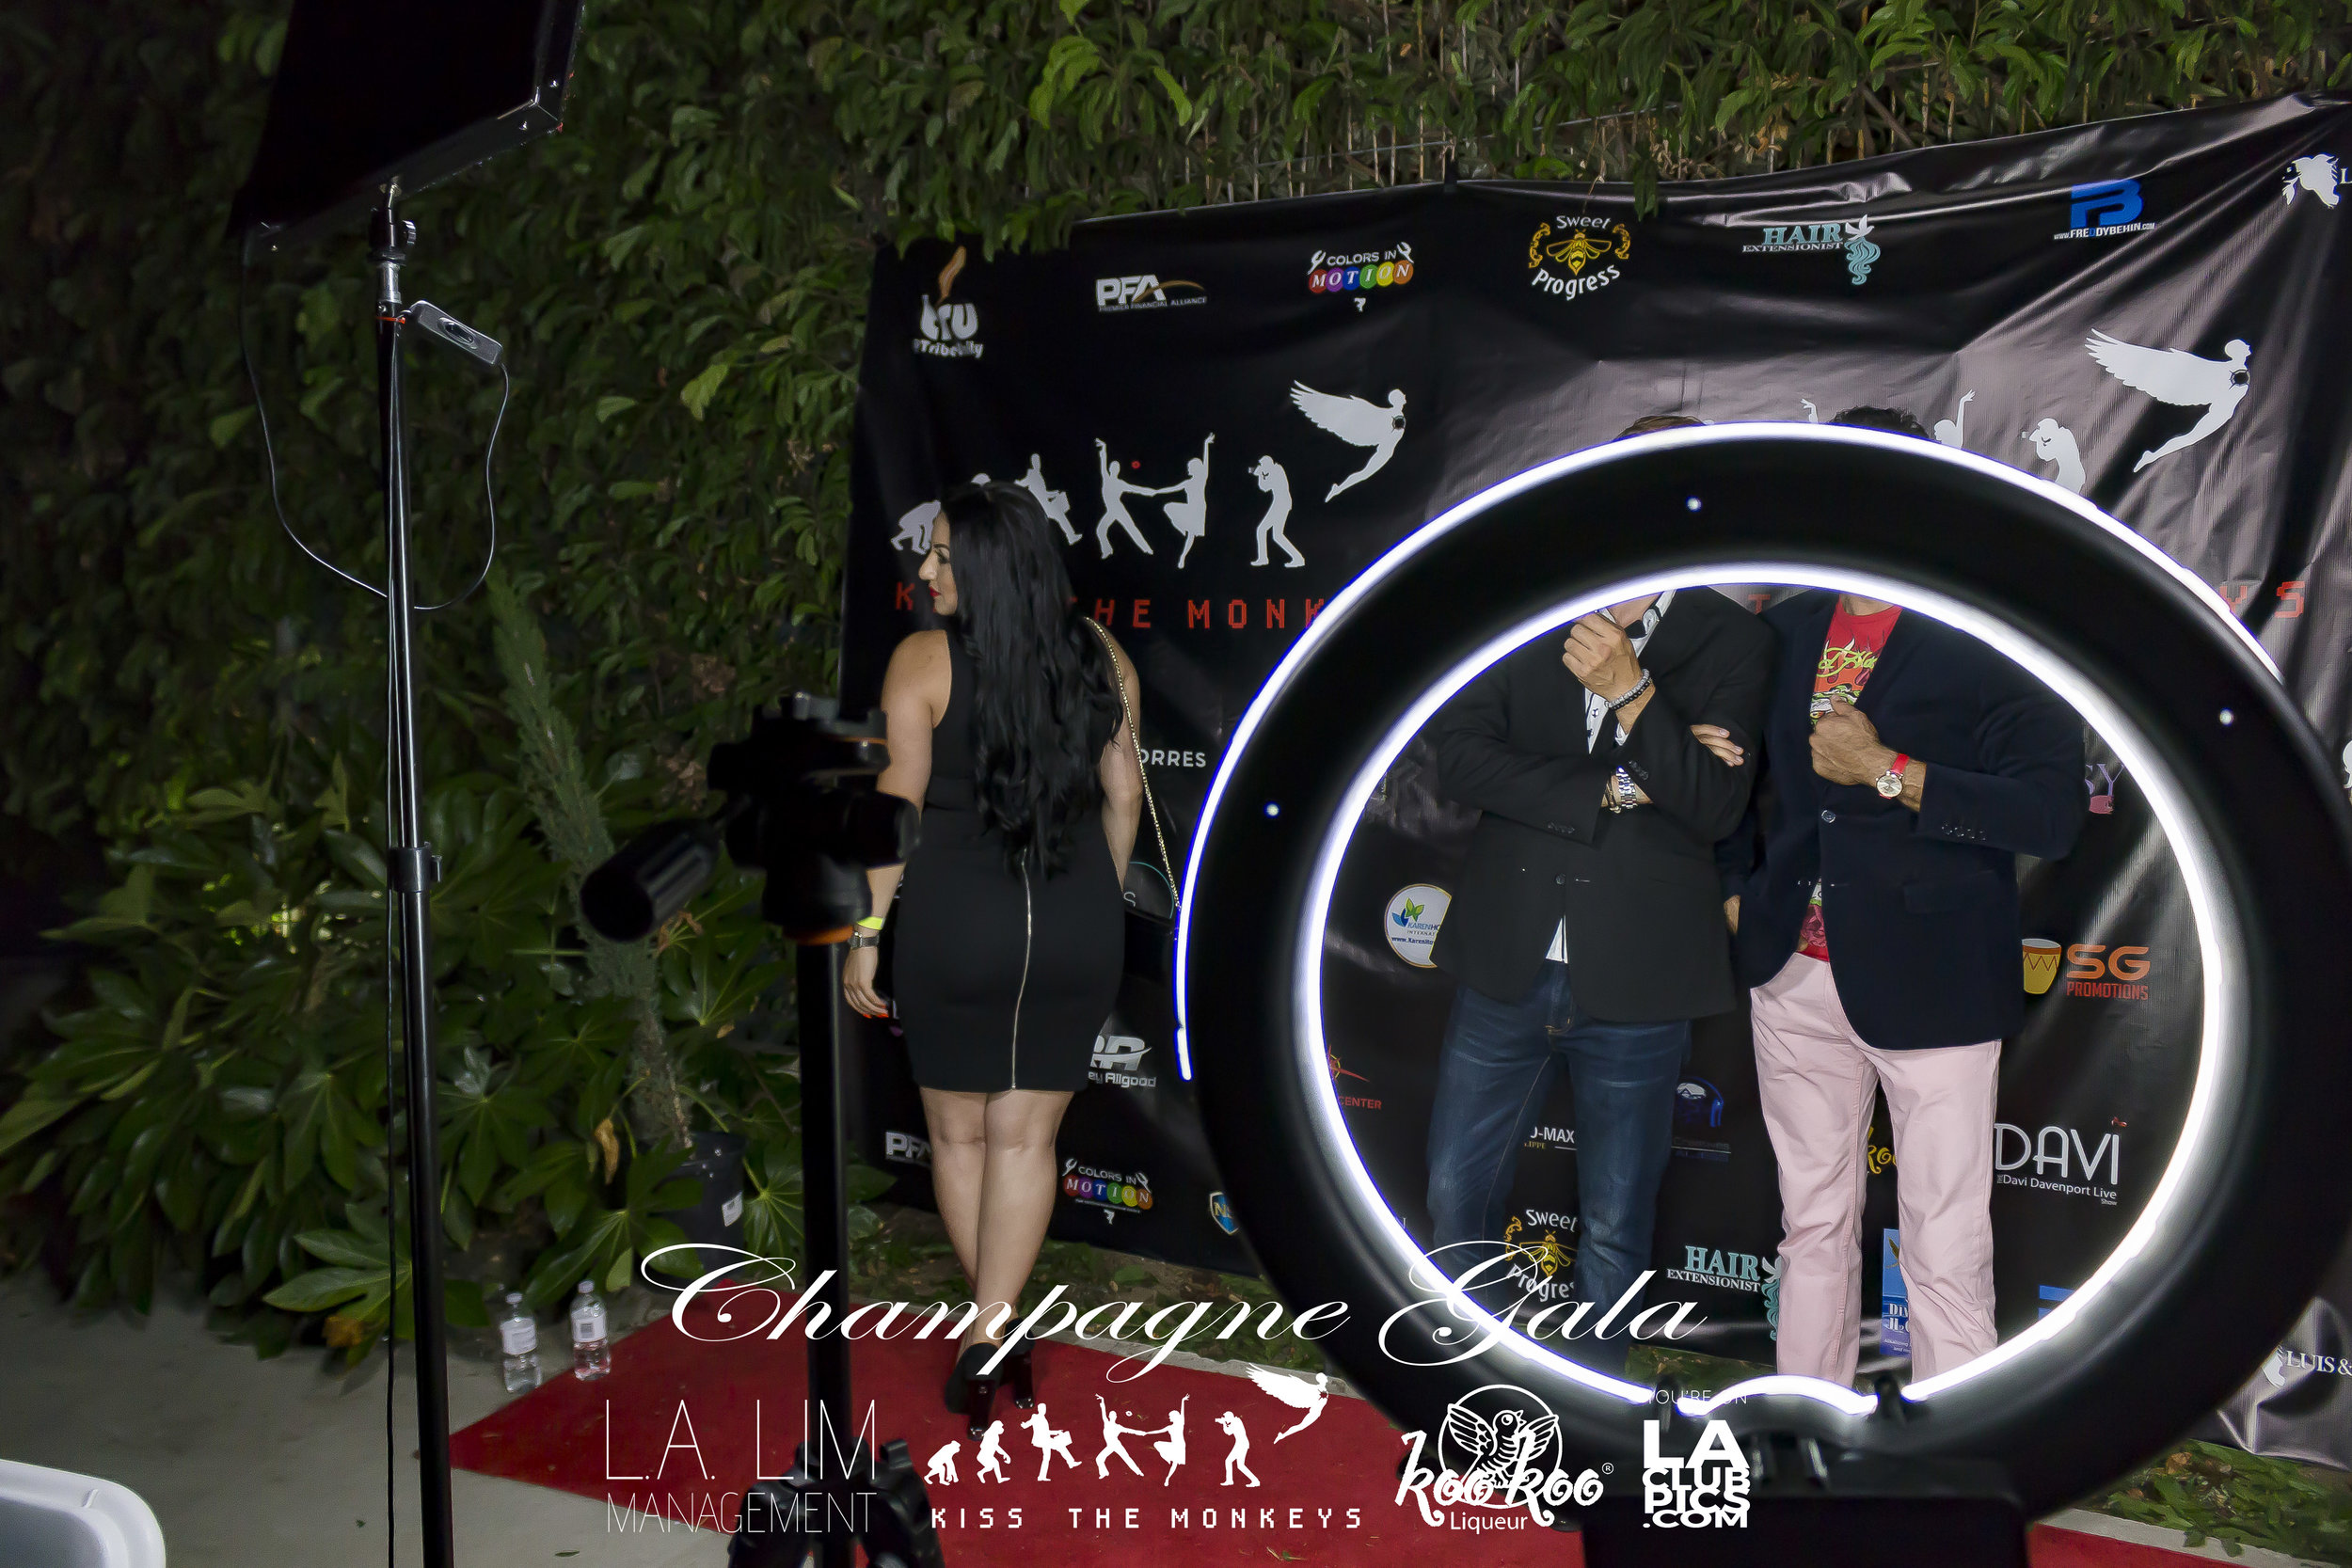 Kiss The Monkeys - Champagne Gala - 07-21-18_39.jpg